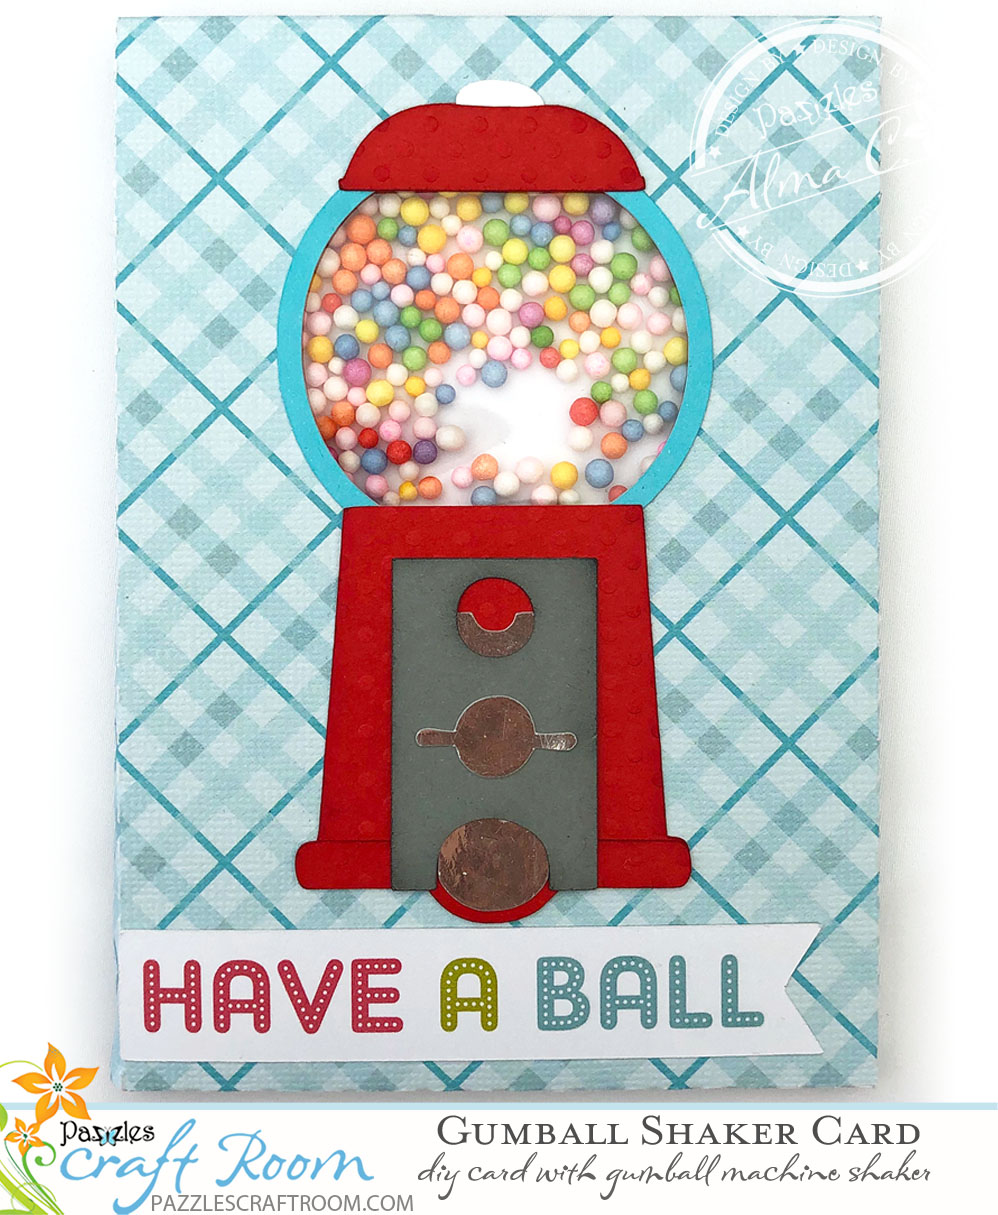 Pazzles DIY Gumball Shaker Card by Alma Cervantes